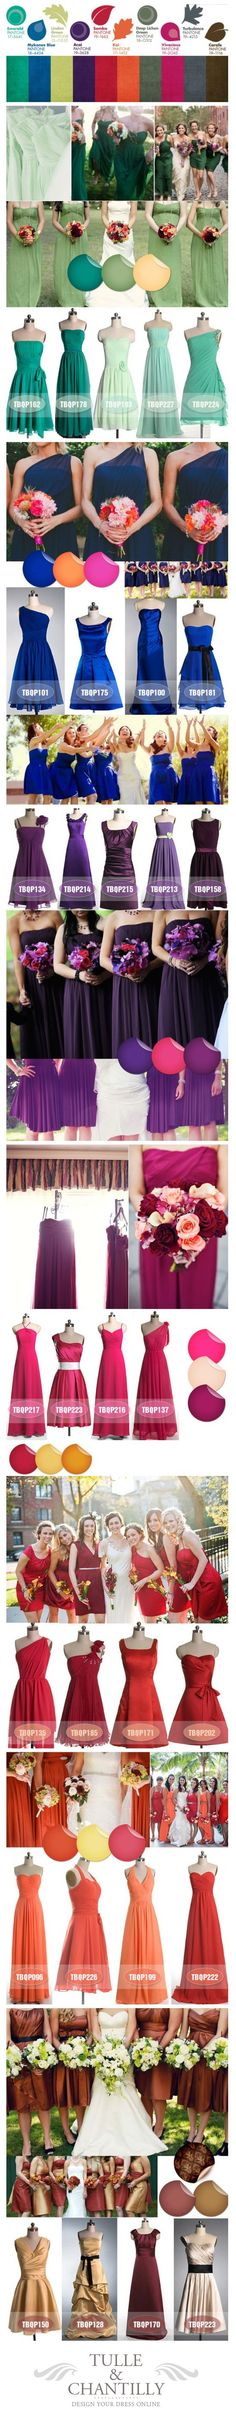 Purple, blue, green, red, orange, golden/caramel, etc. for the bridesmaid dresses and color ideas for a Fall wedding.